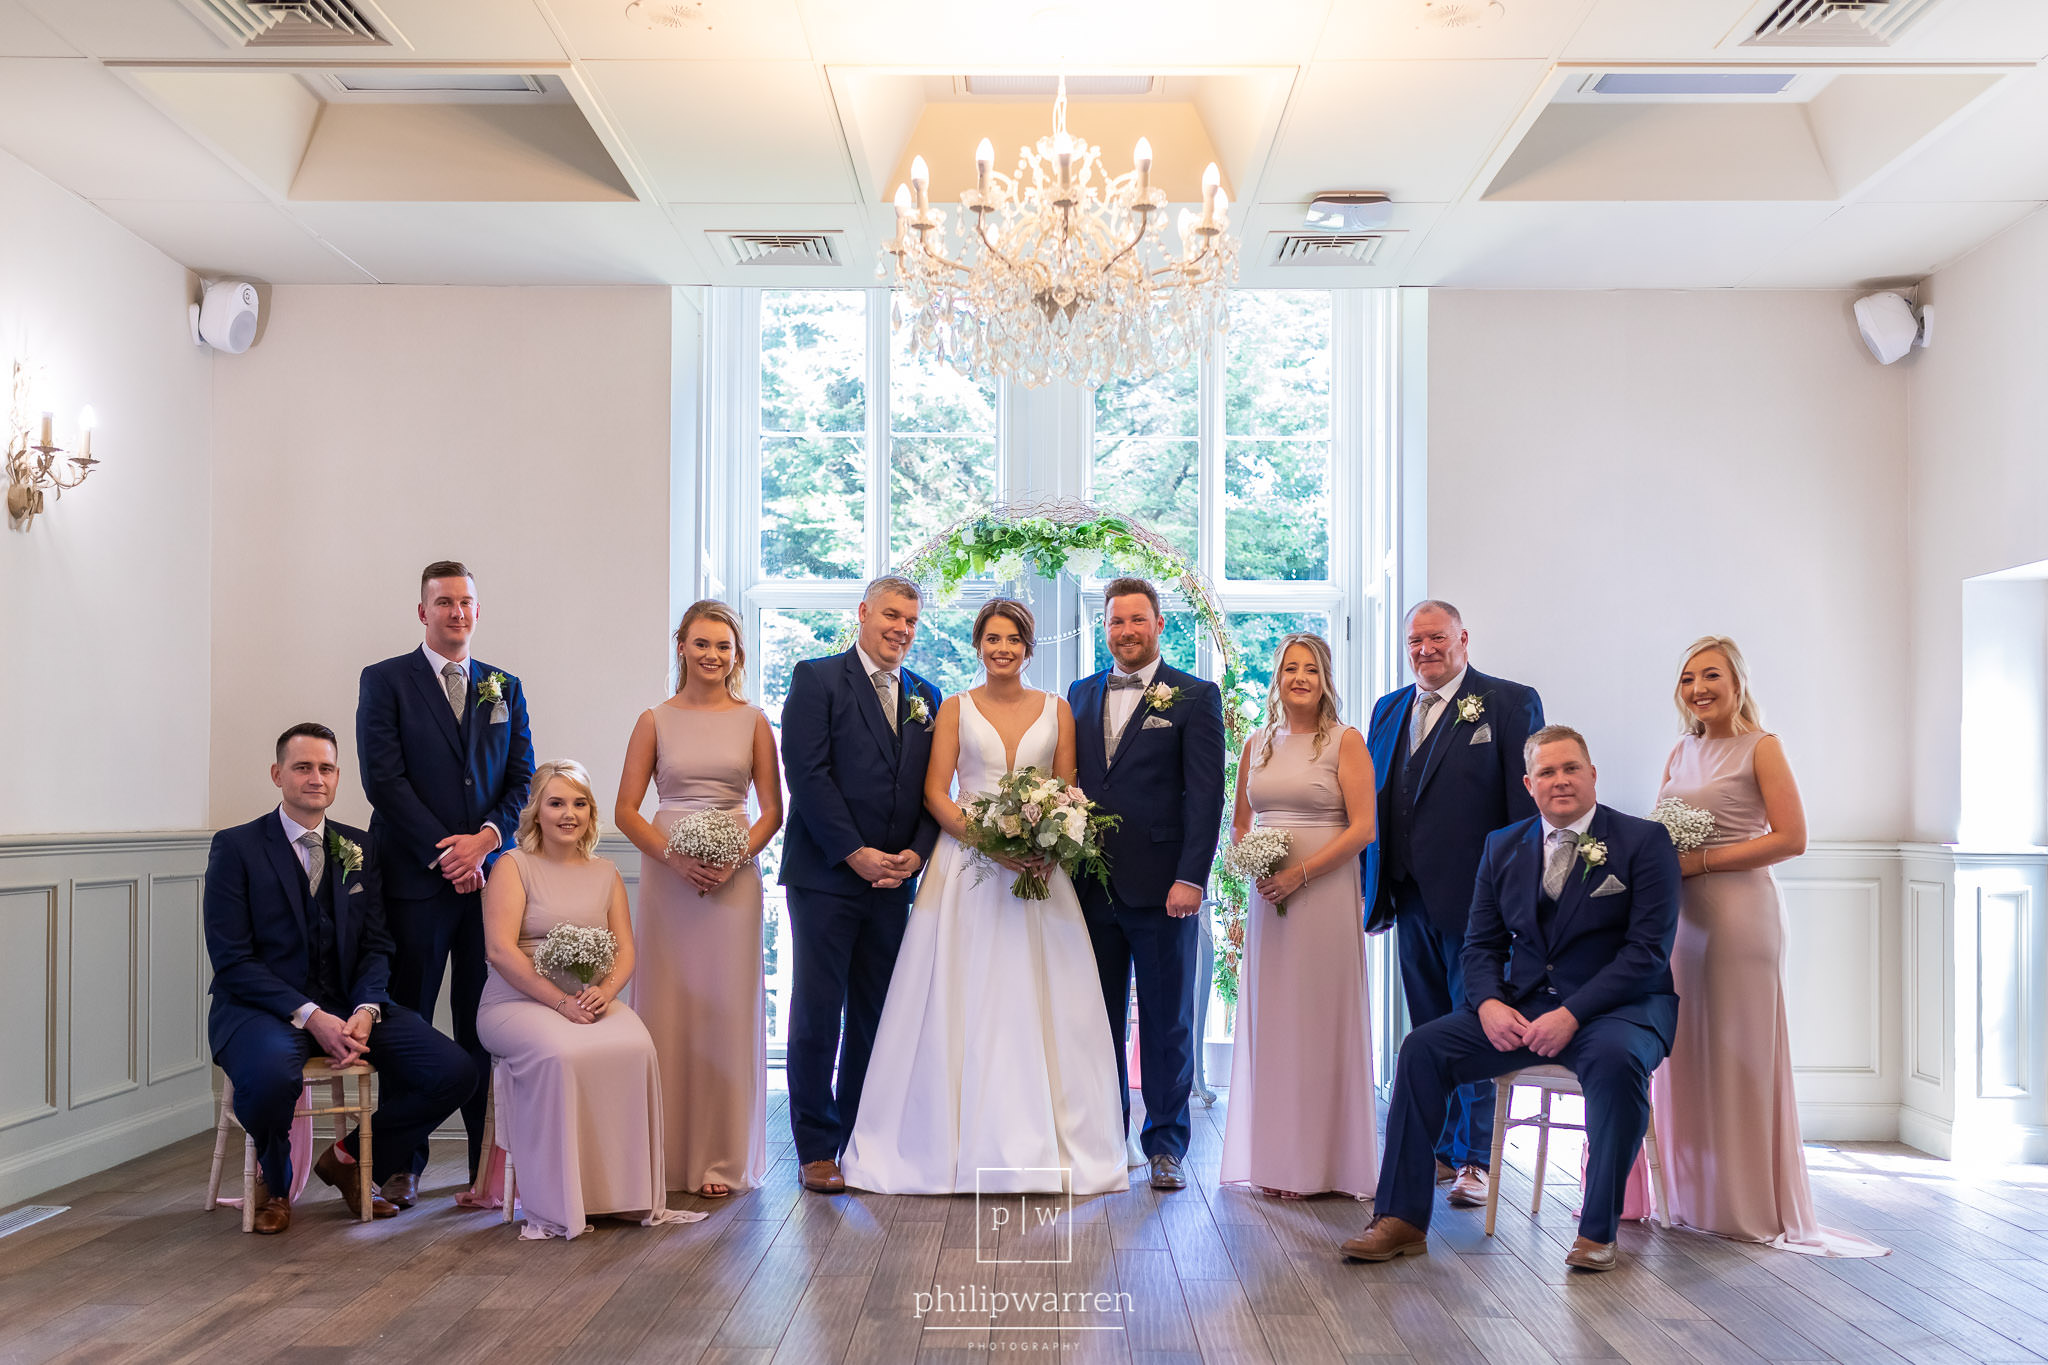 bridal party and groomsmen photo in ceremony room